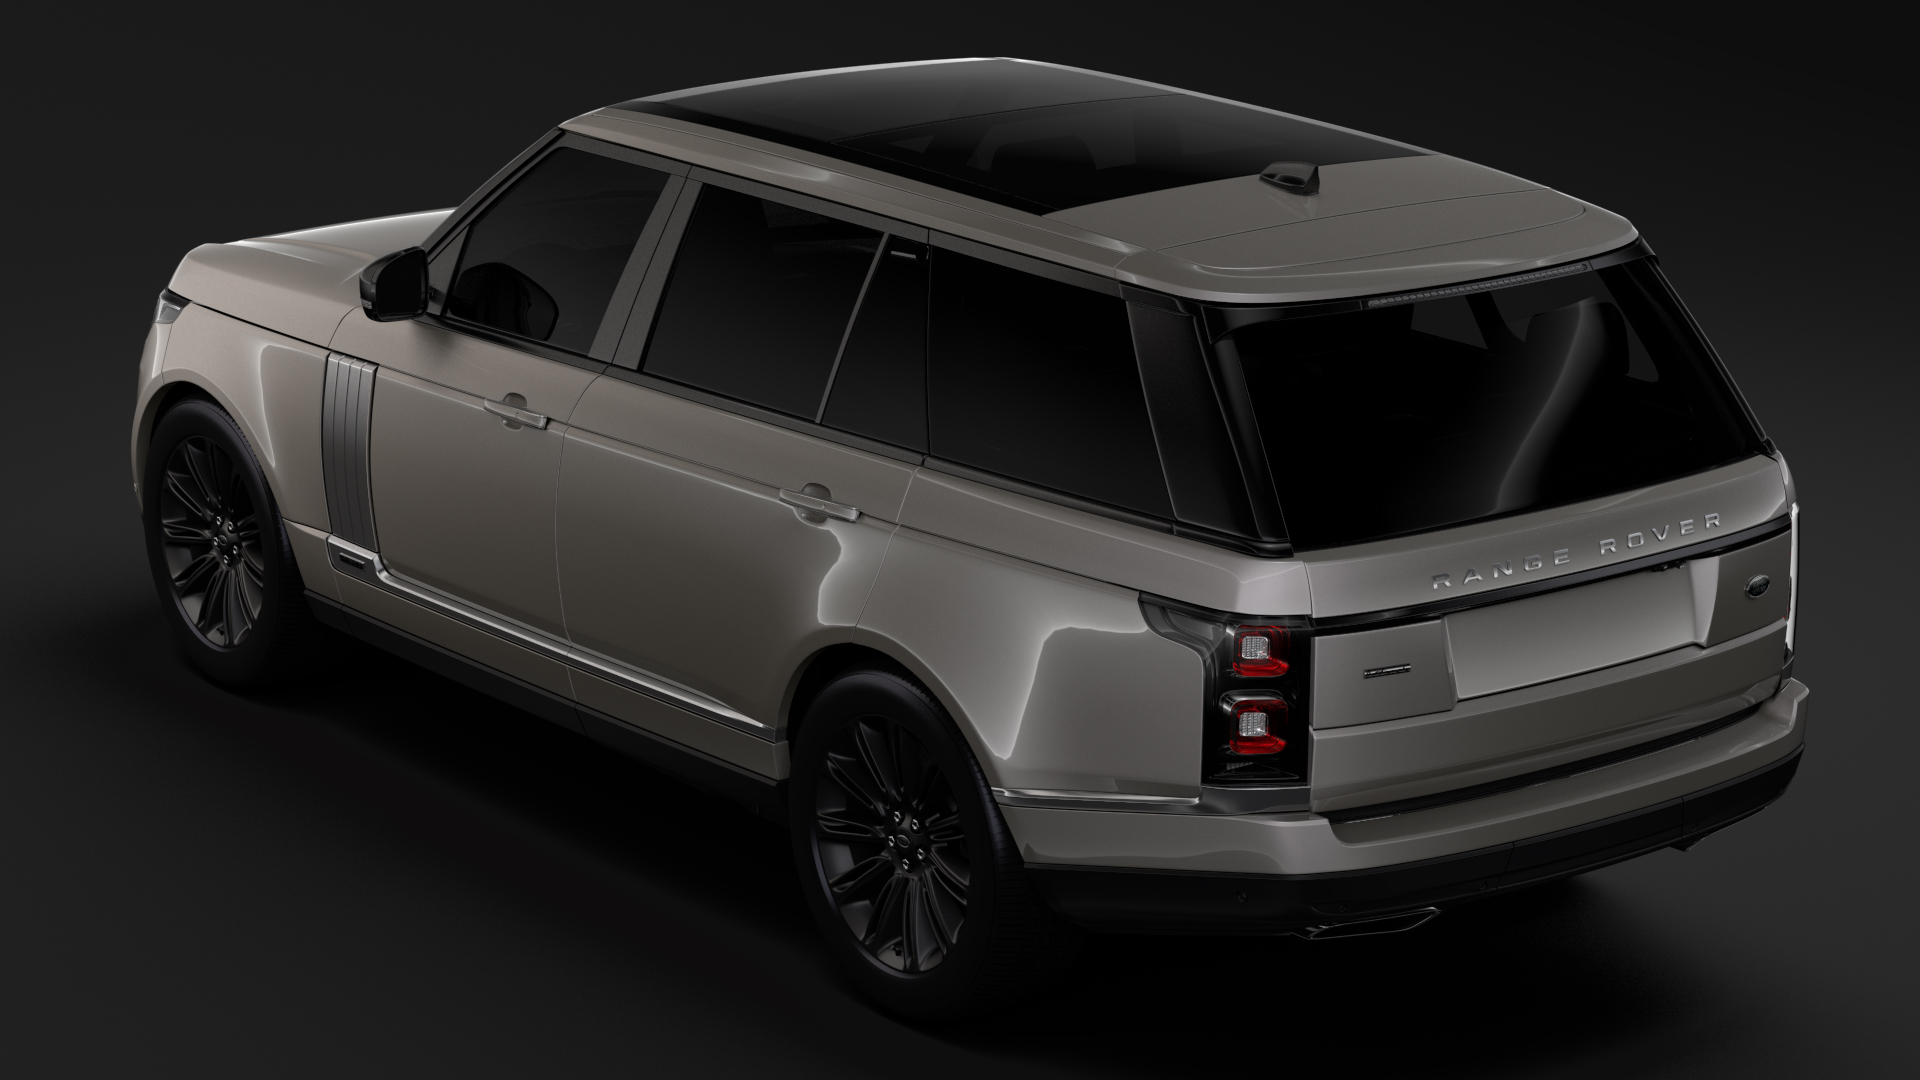 range rover autobiography hybrid lwb l405 2018 3d model flatpyramid. Black Bedroom Furniture Sets. Home Design Ideas